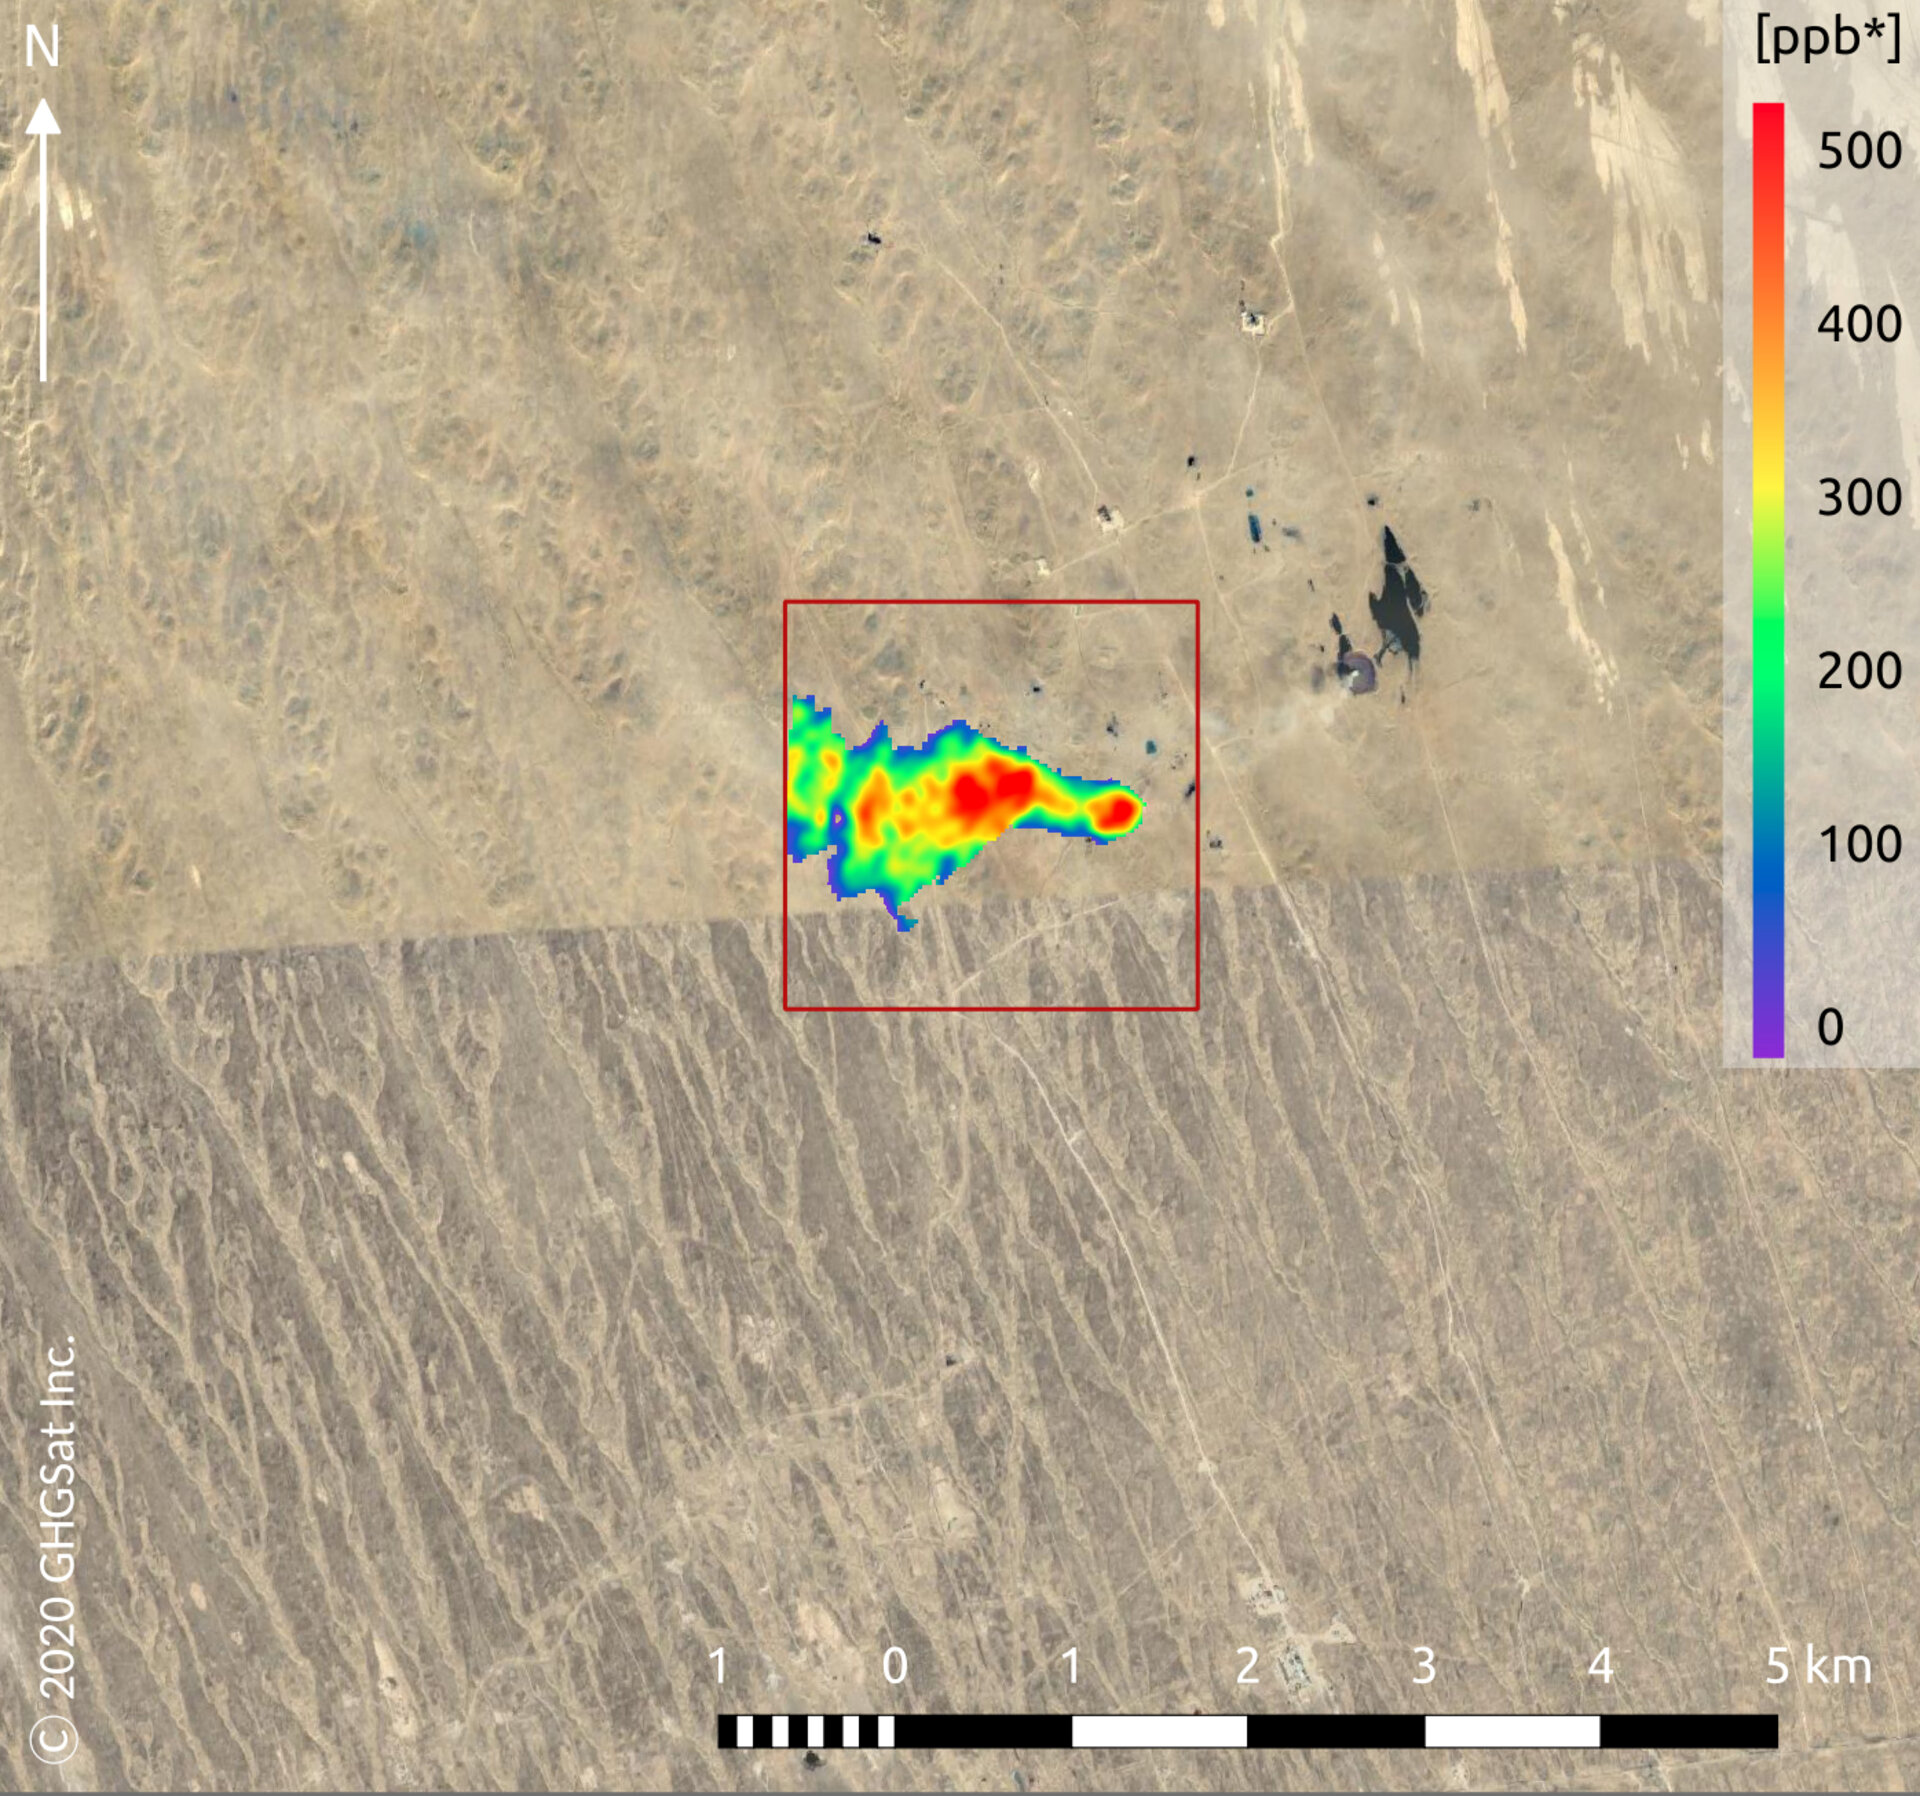 Methane plume from oil & gas infrastructure in the Caspian Sea region